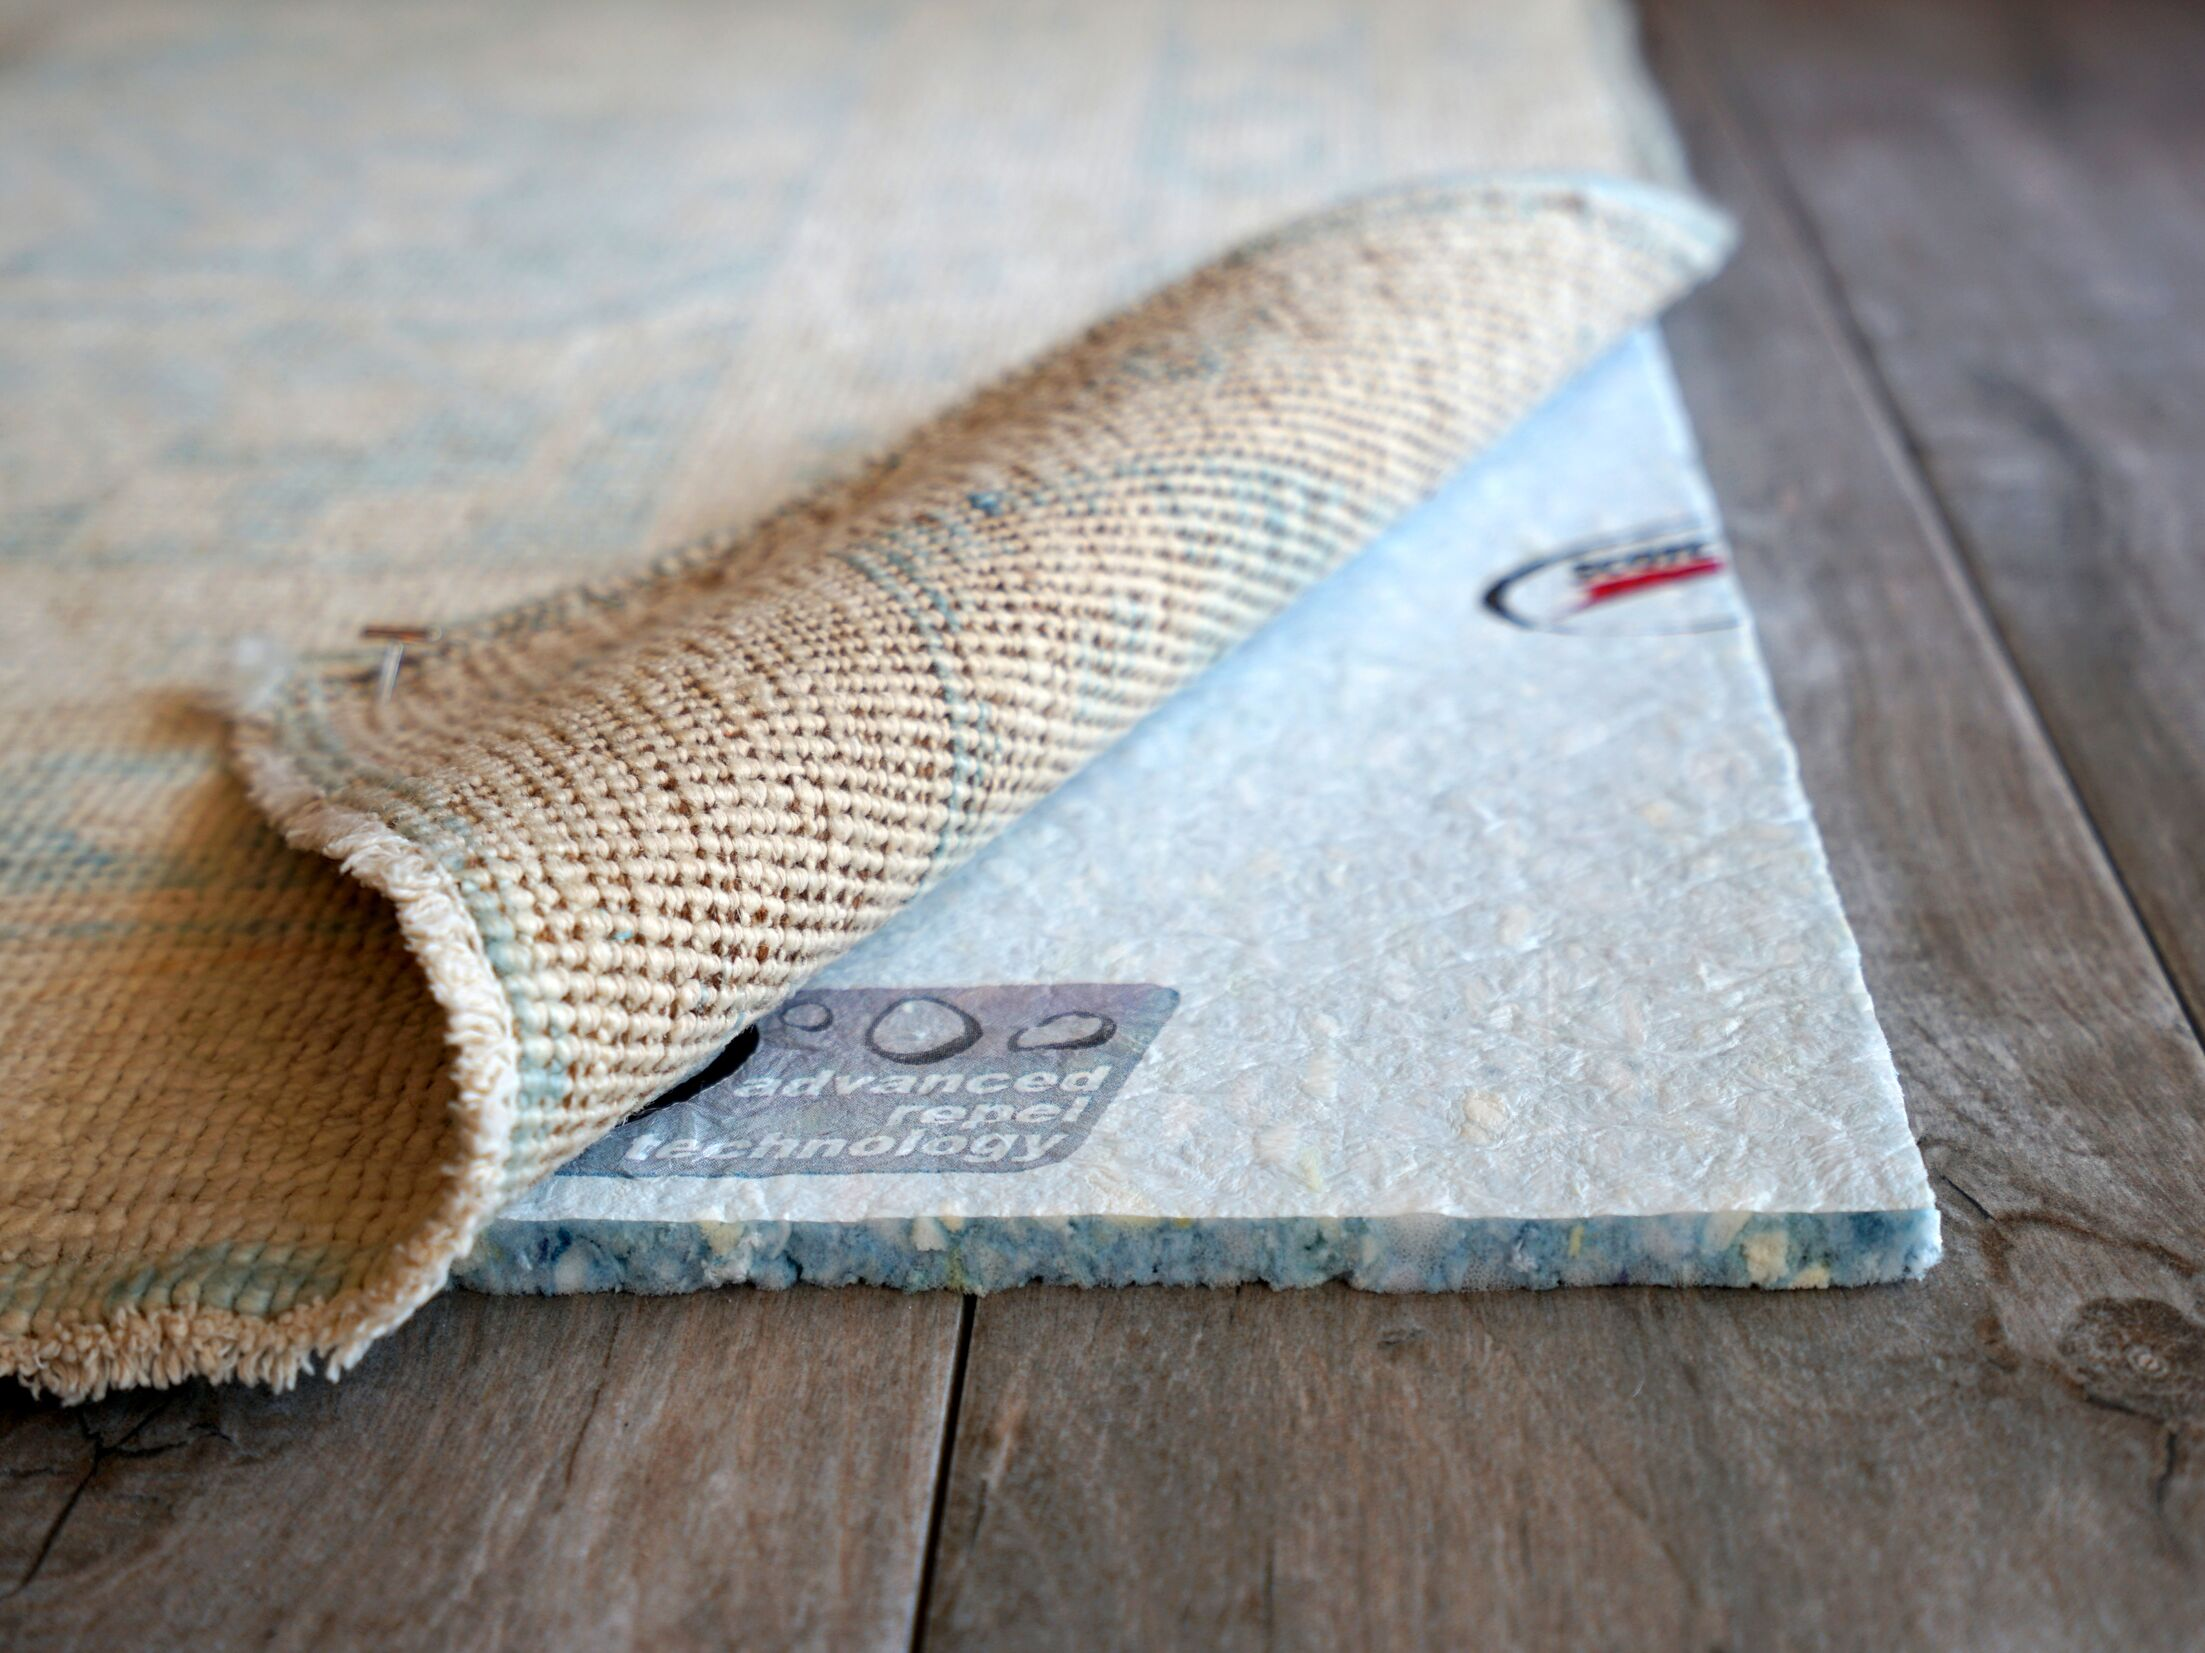 Spill Tech Scotchguard 3M Waterproof with Advanced Repel Technology Rug Pad Rug Pad Size: Round 8'